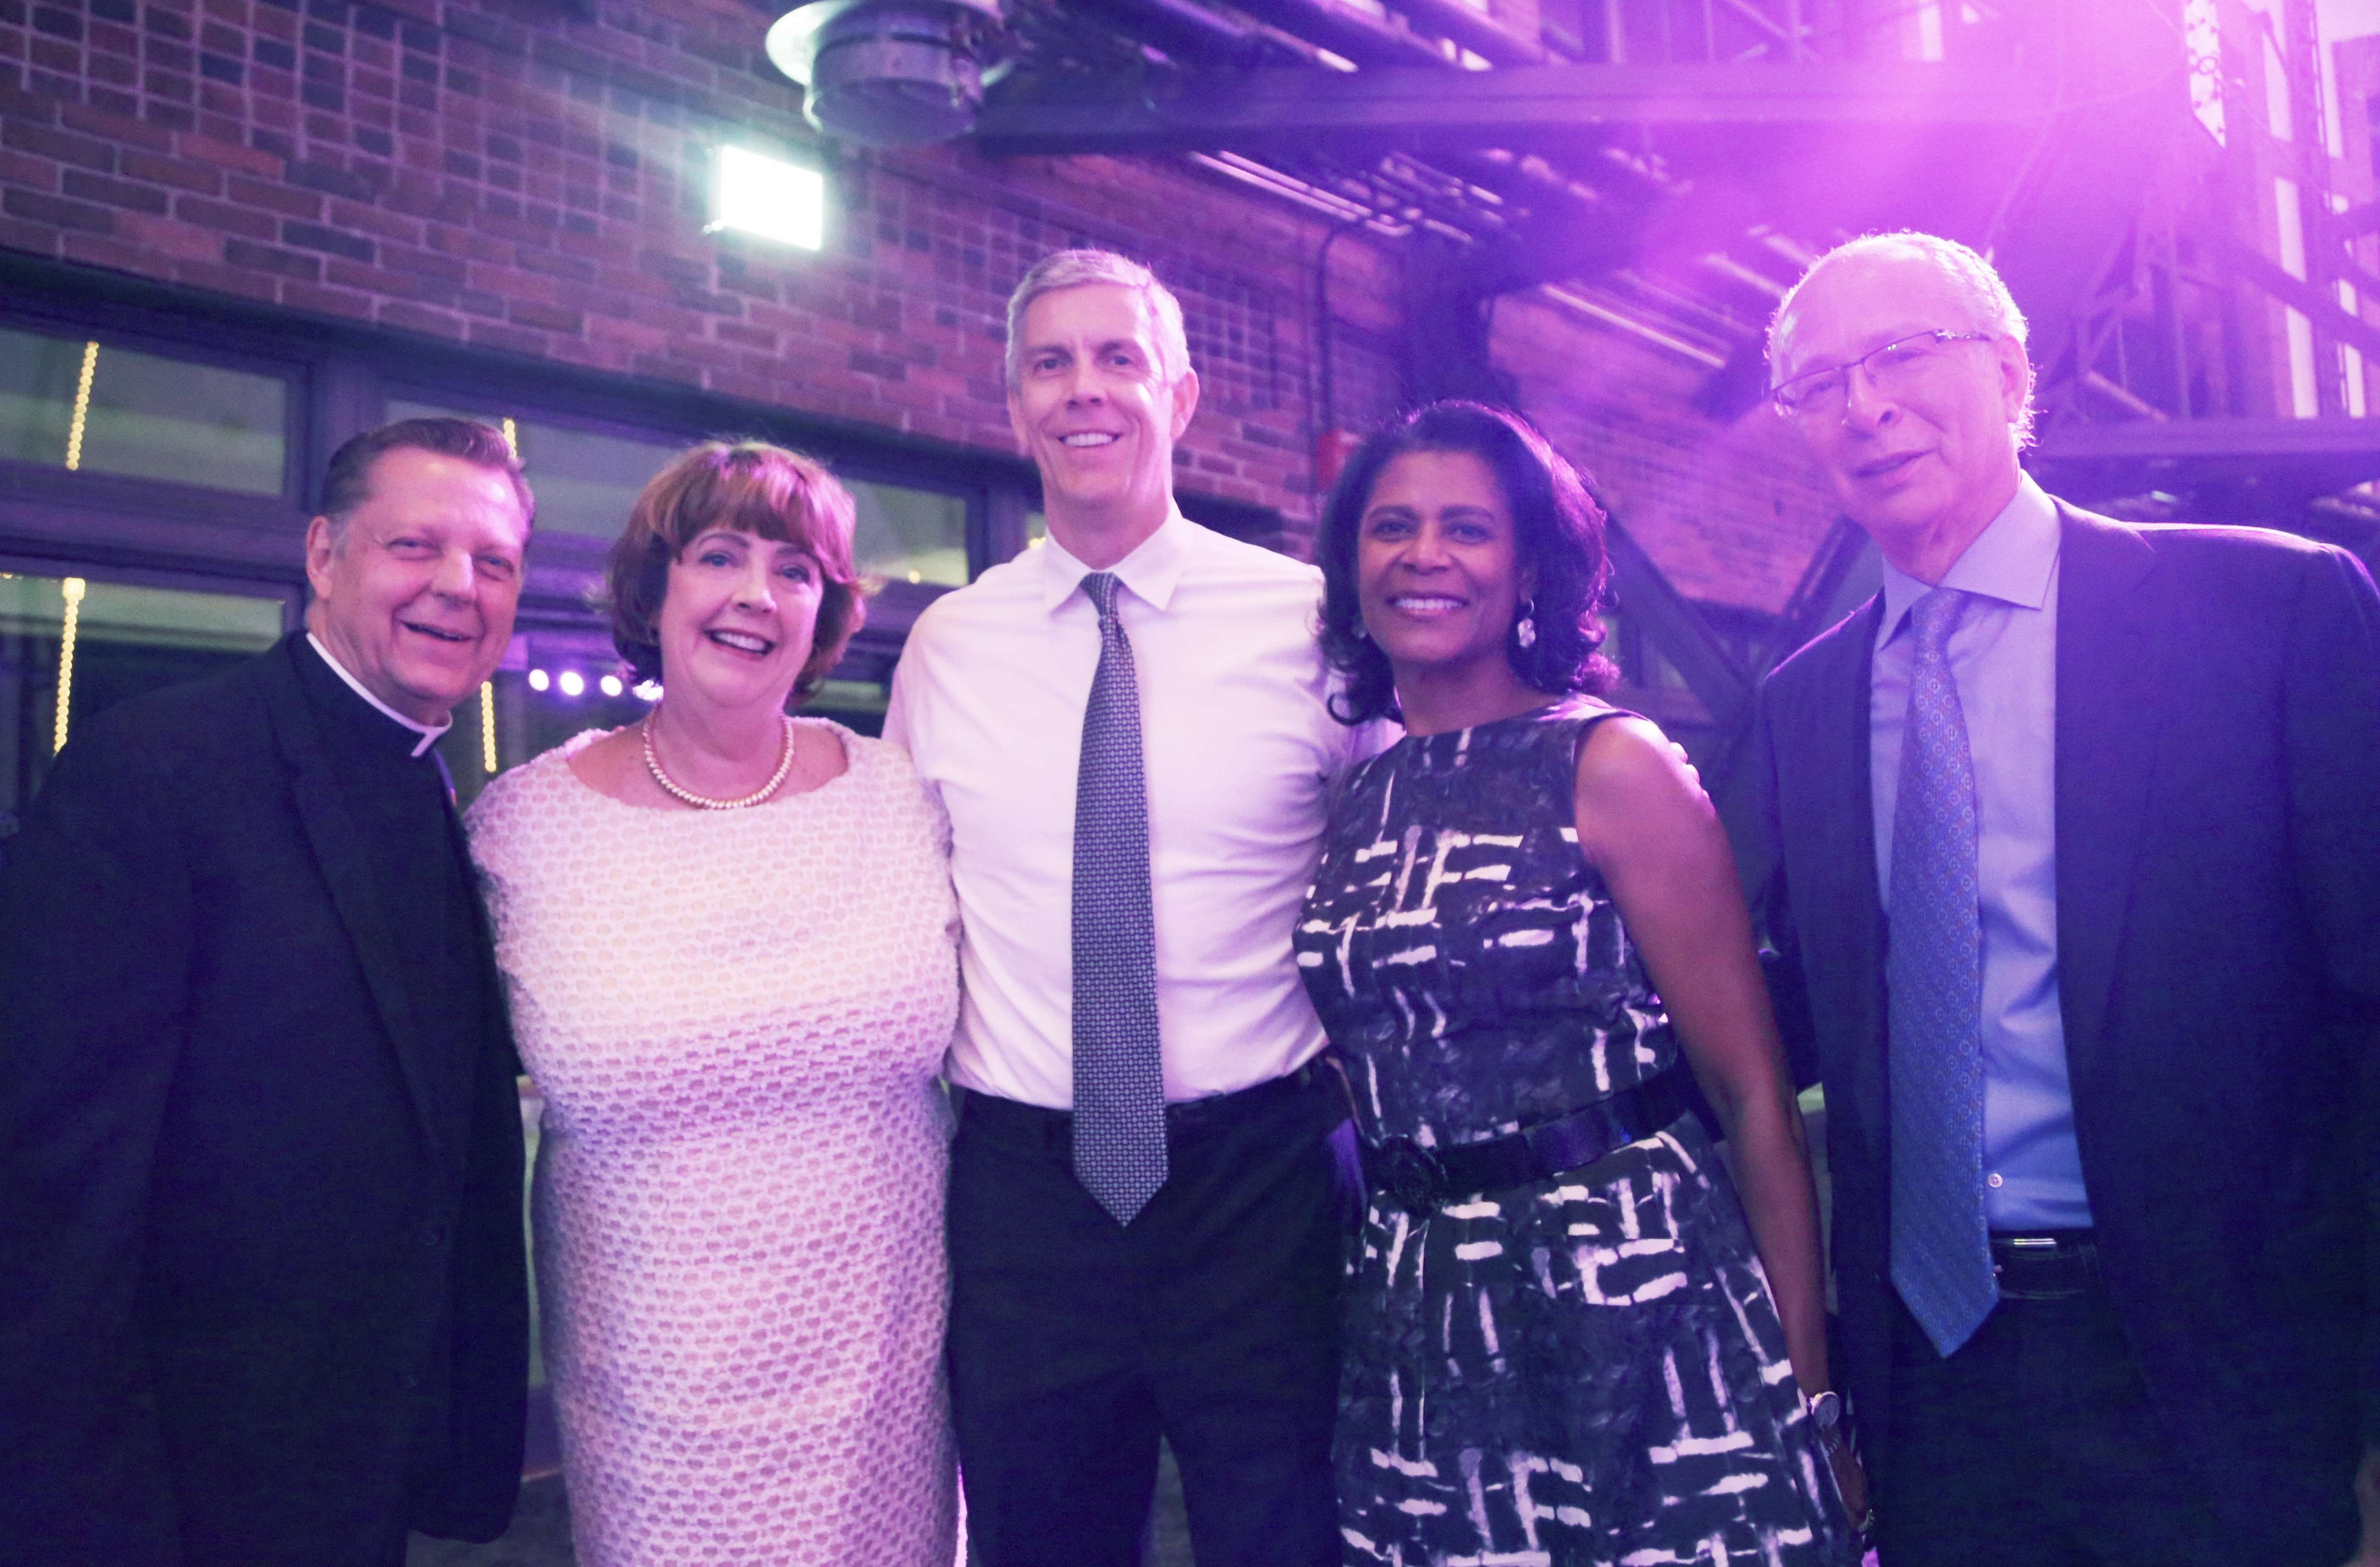 <p>Youth advocates Fr. Michael Pfleger, After School Matters CEO Mary Ellen Caron, managing partner of Emerson Collective Arne Duncan, and After School Matters Gala Co-Chairs Dona and Sam Scott pose in the Aon Grand Ballroom at Navy Pier on September 19, 2016 at the After School Matters Annual Gala. Photo credit: After School Matters</p>